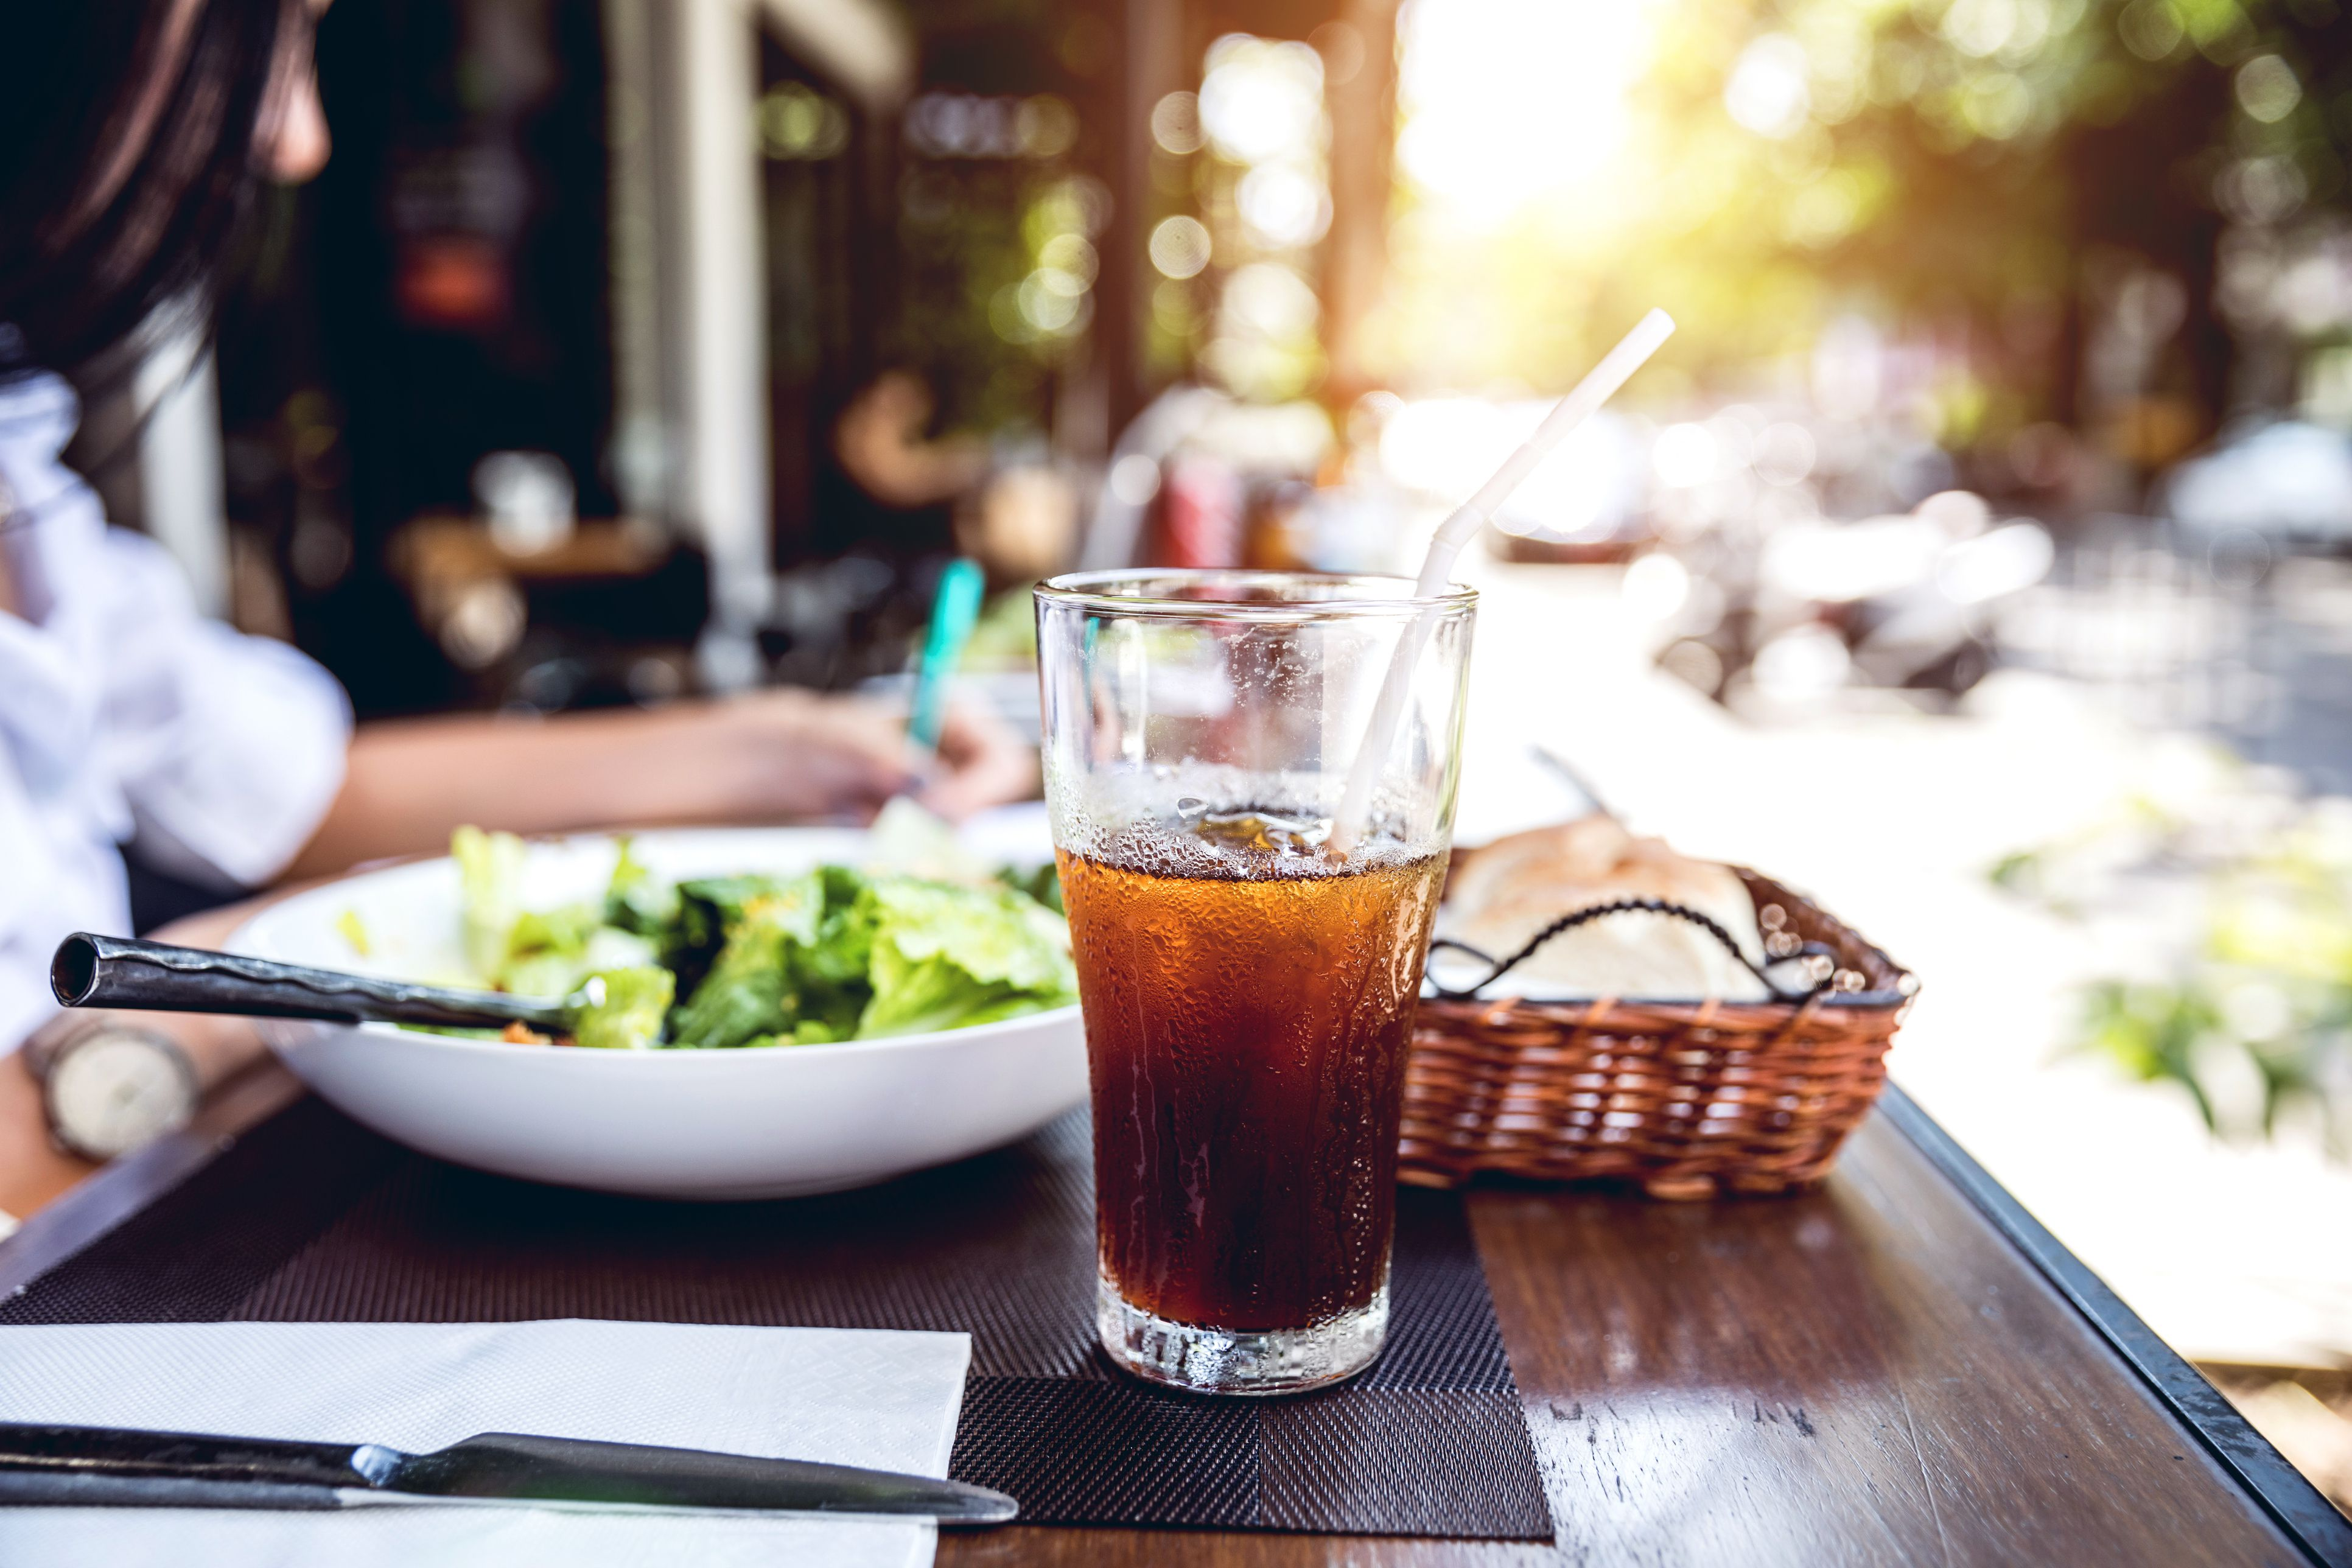 Restaurant table with a soda drink